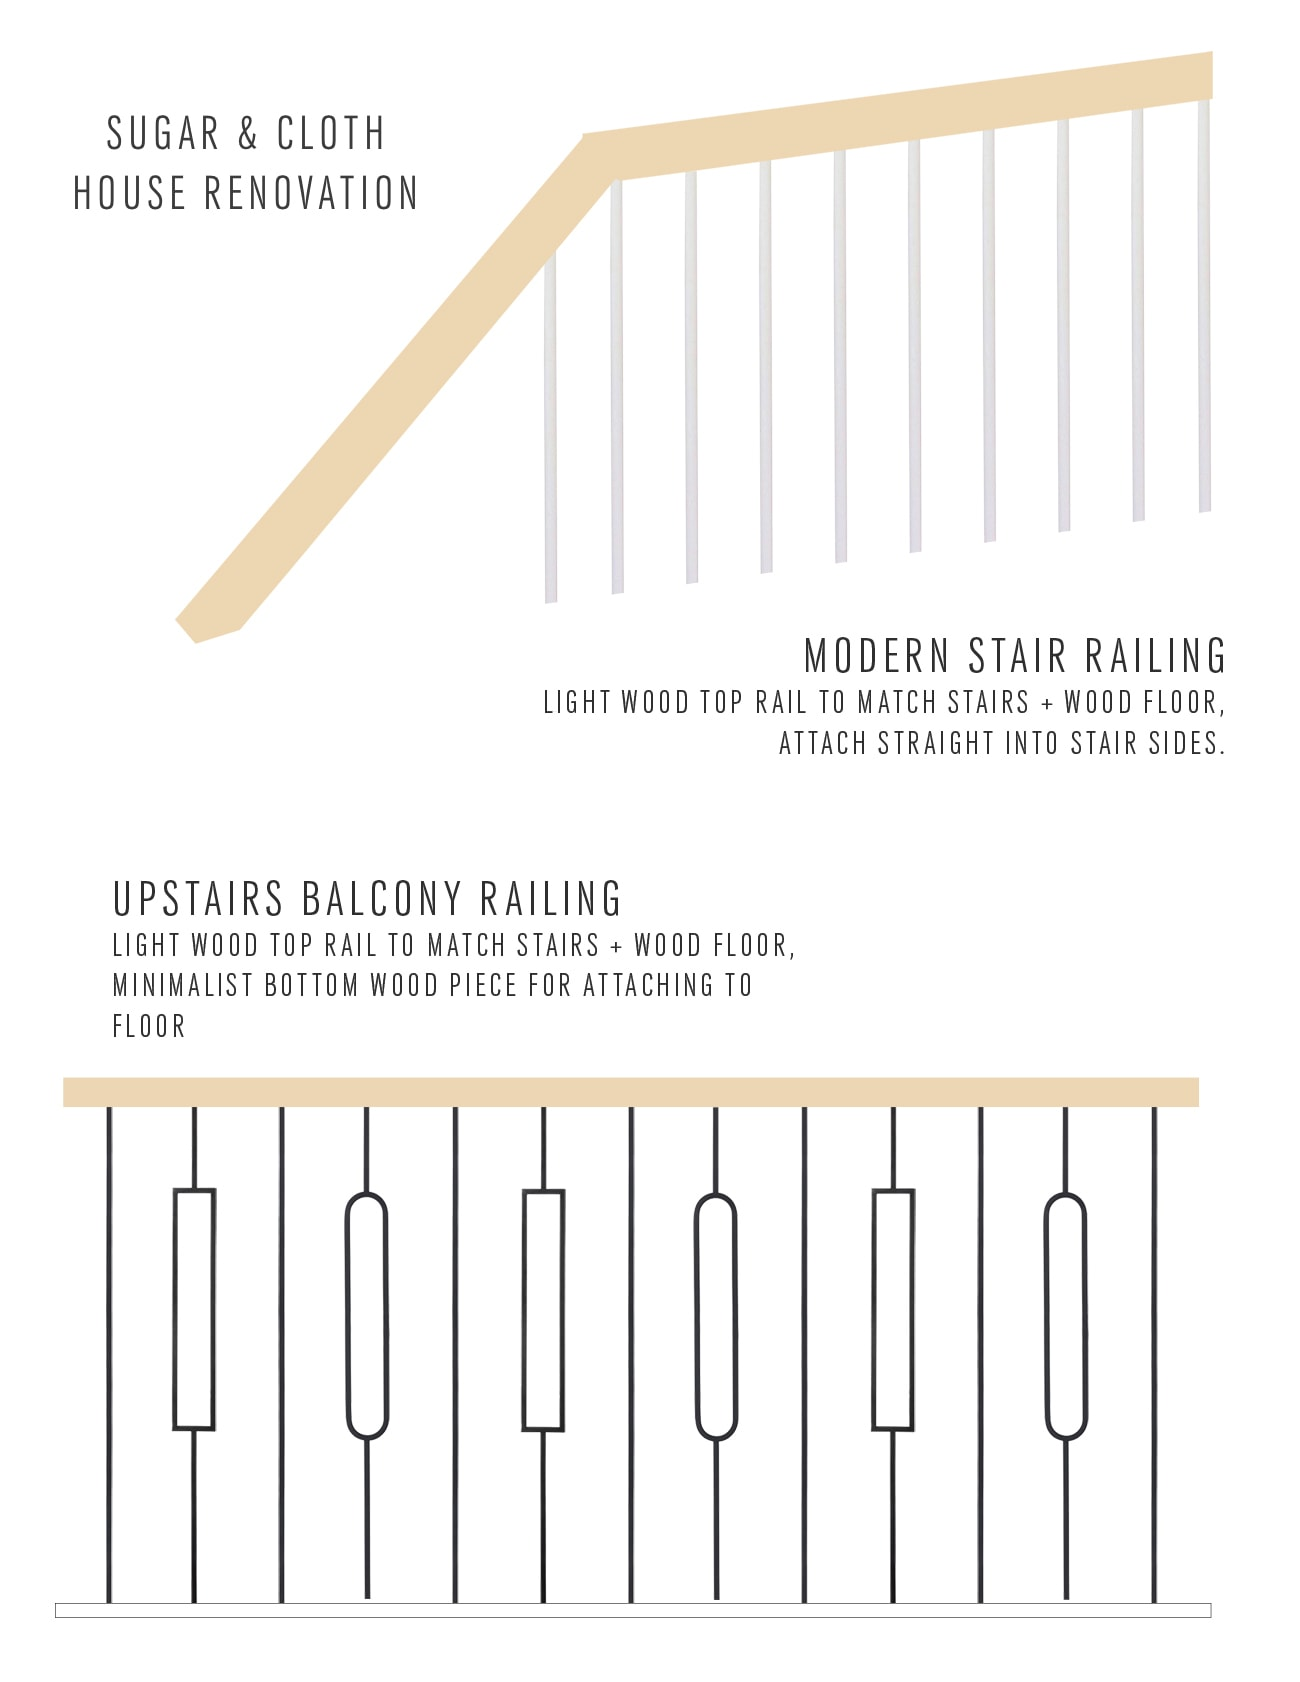 new design renderings for railings - a view of the old balcony - Sugar & Cloth Casa: Updating An Old Staircase by top Houston lifestyle blogger Ashley Rose of Sugar & Cloth